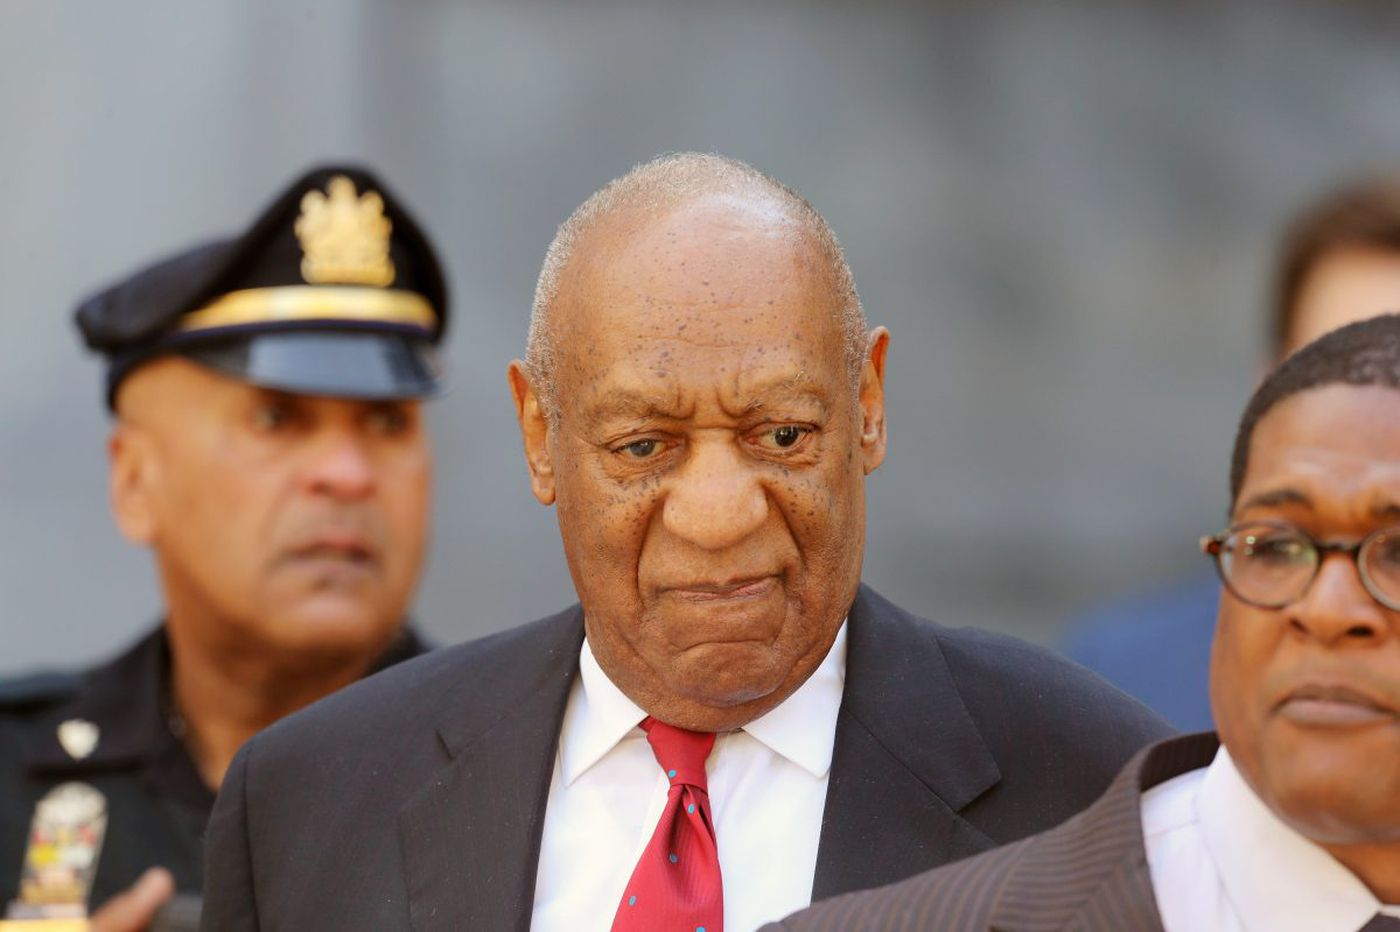 How Cosby verdict could signal #MeToo impact on criminal justice system